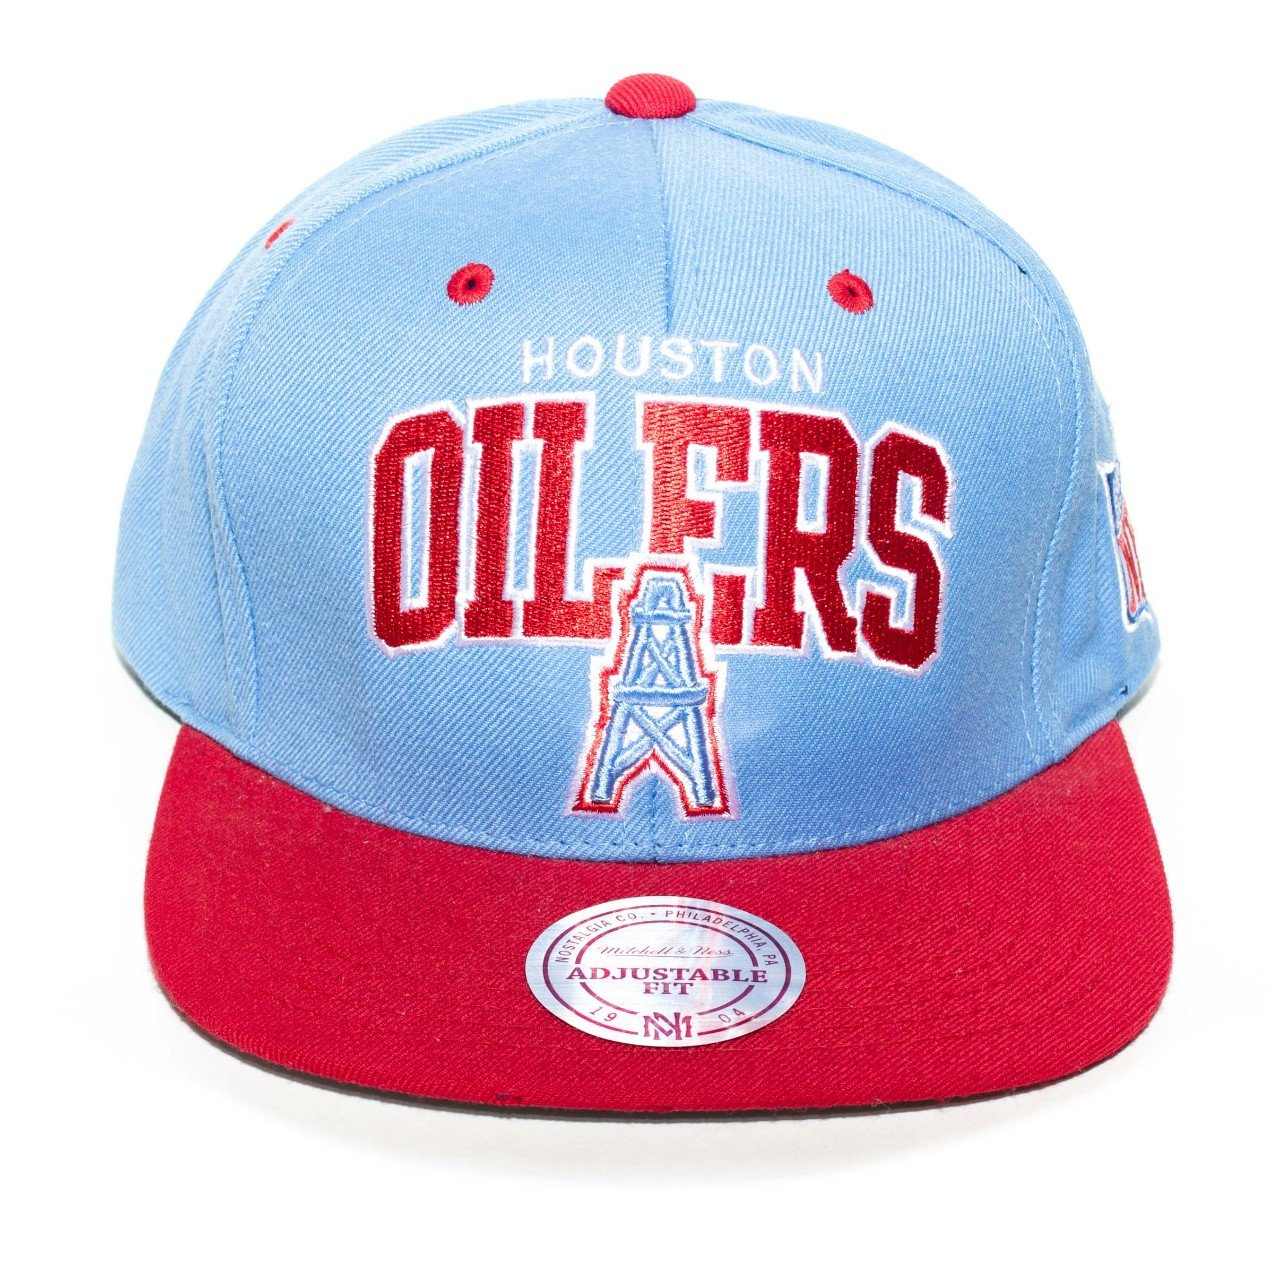 Houston Oilers Mitchell and Ness Snapback Brand  hat  sports - Depop f253c8f67c9